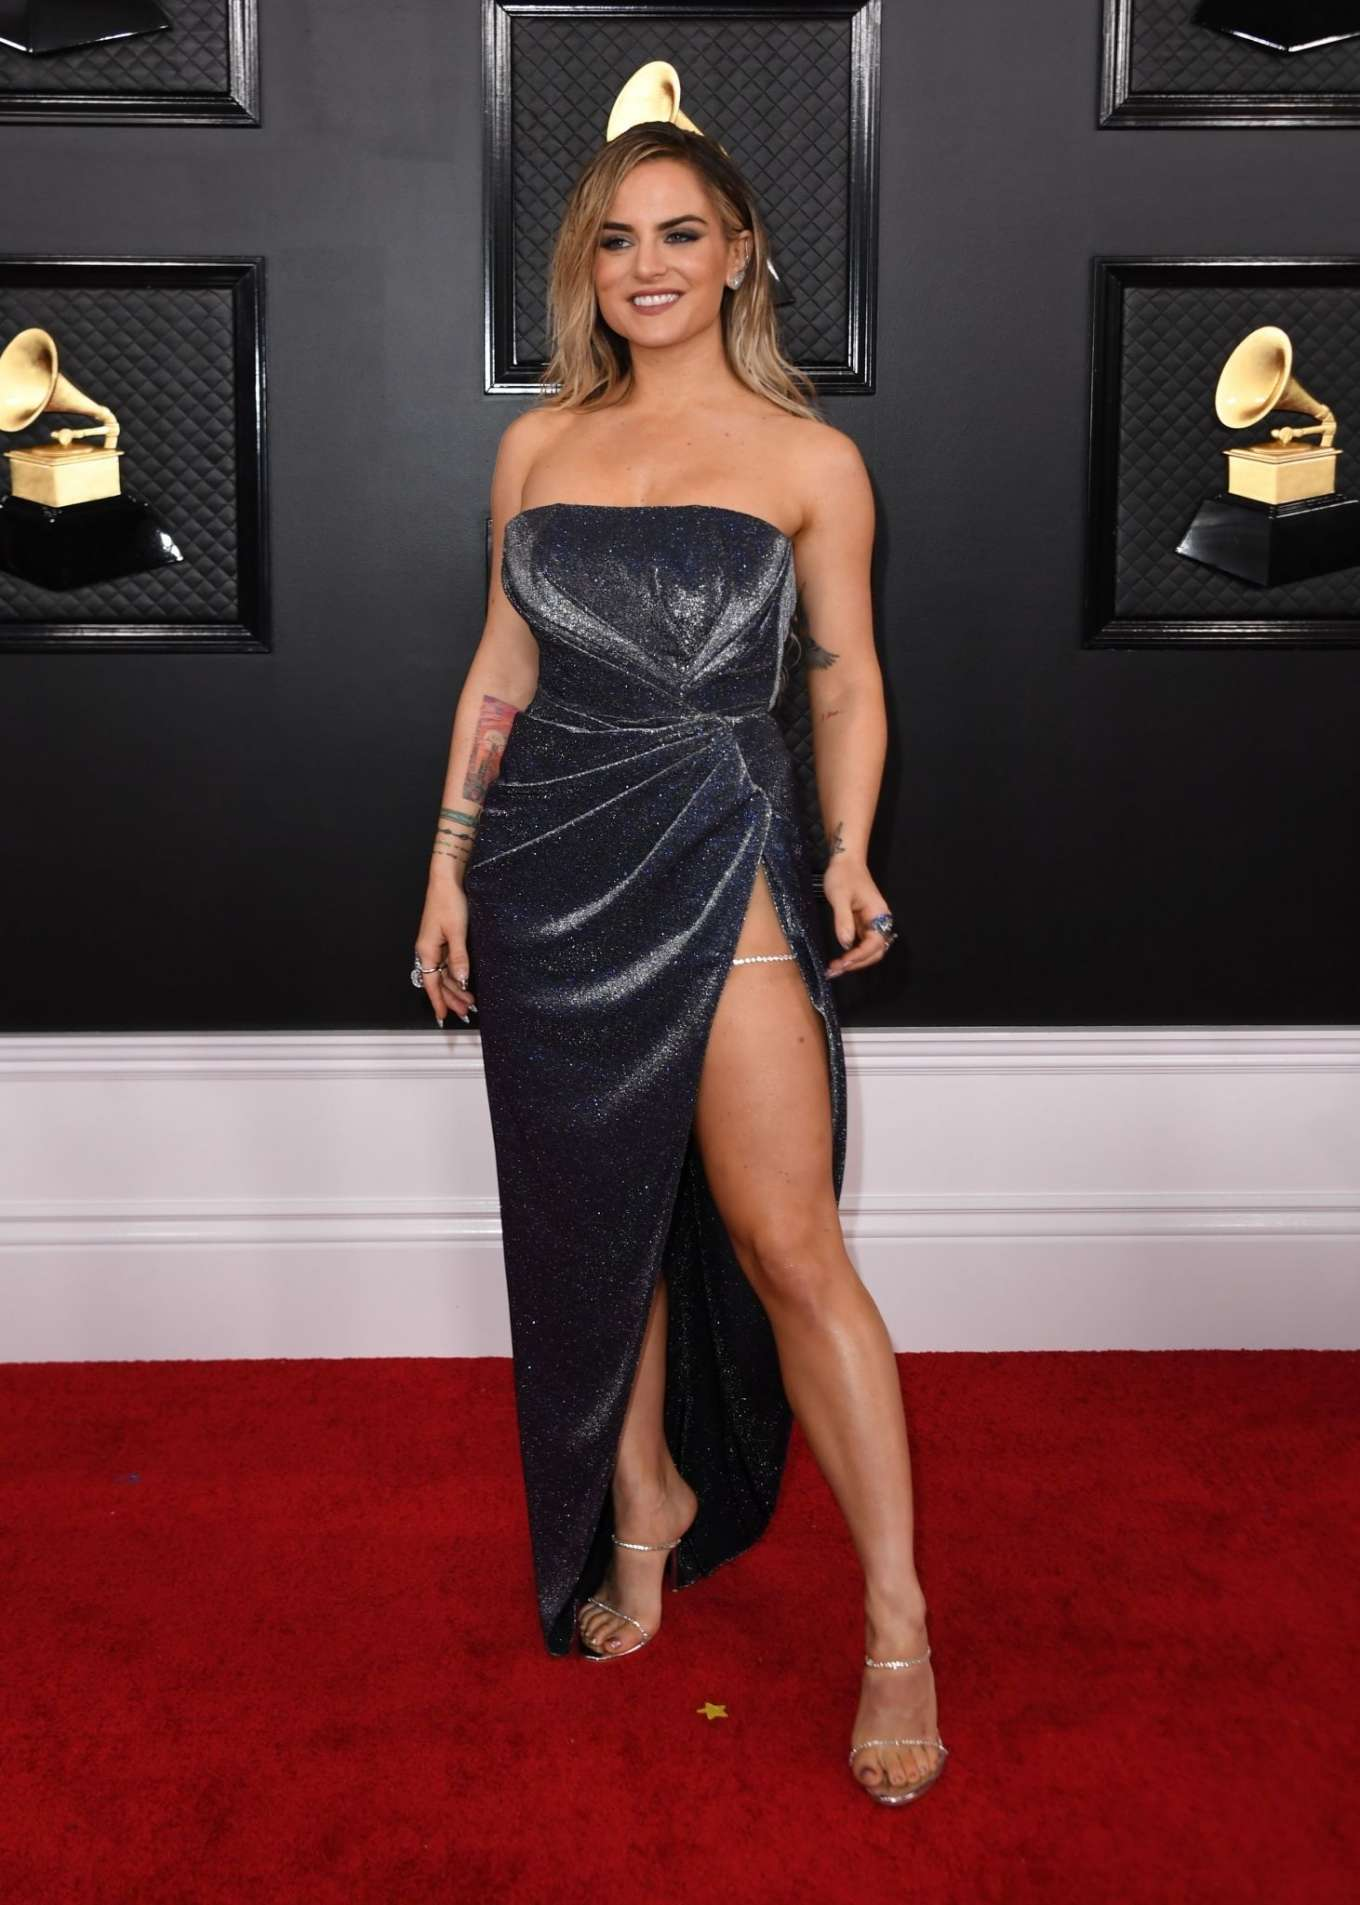 Joanna JoJo Levesque 2020 : Joanna JoJo Levesque – 2020 Grammy Awards-08